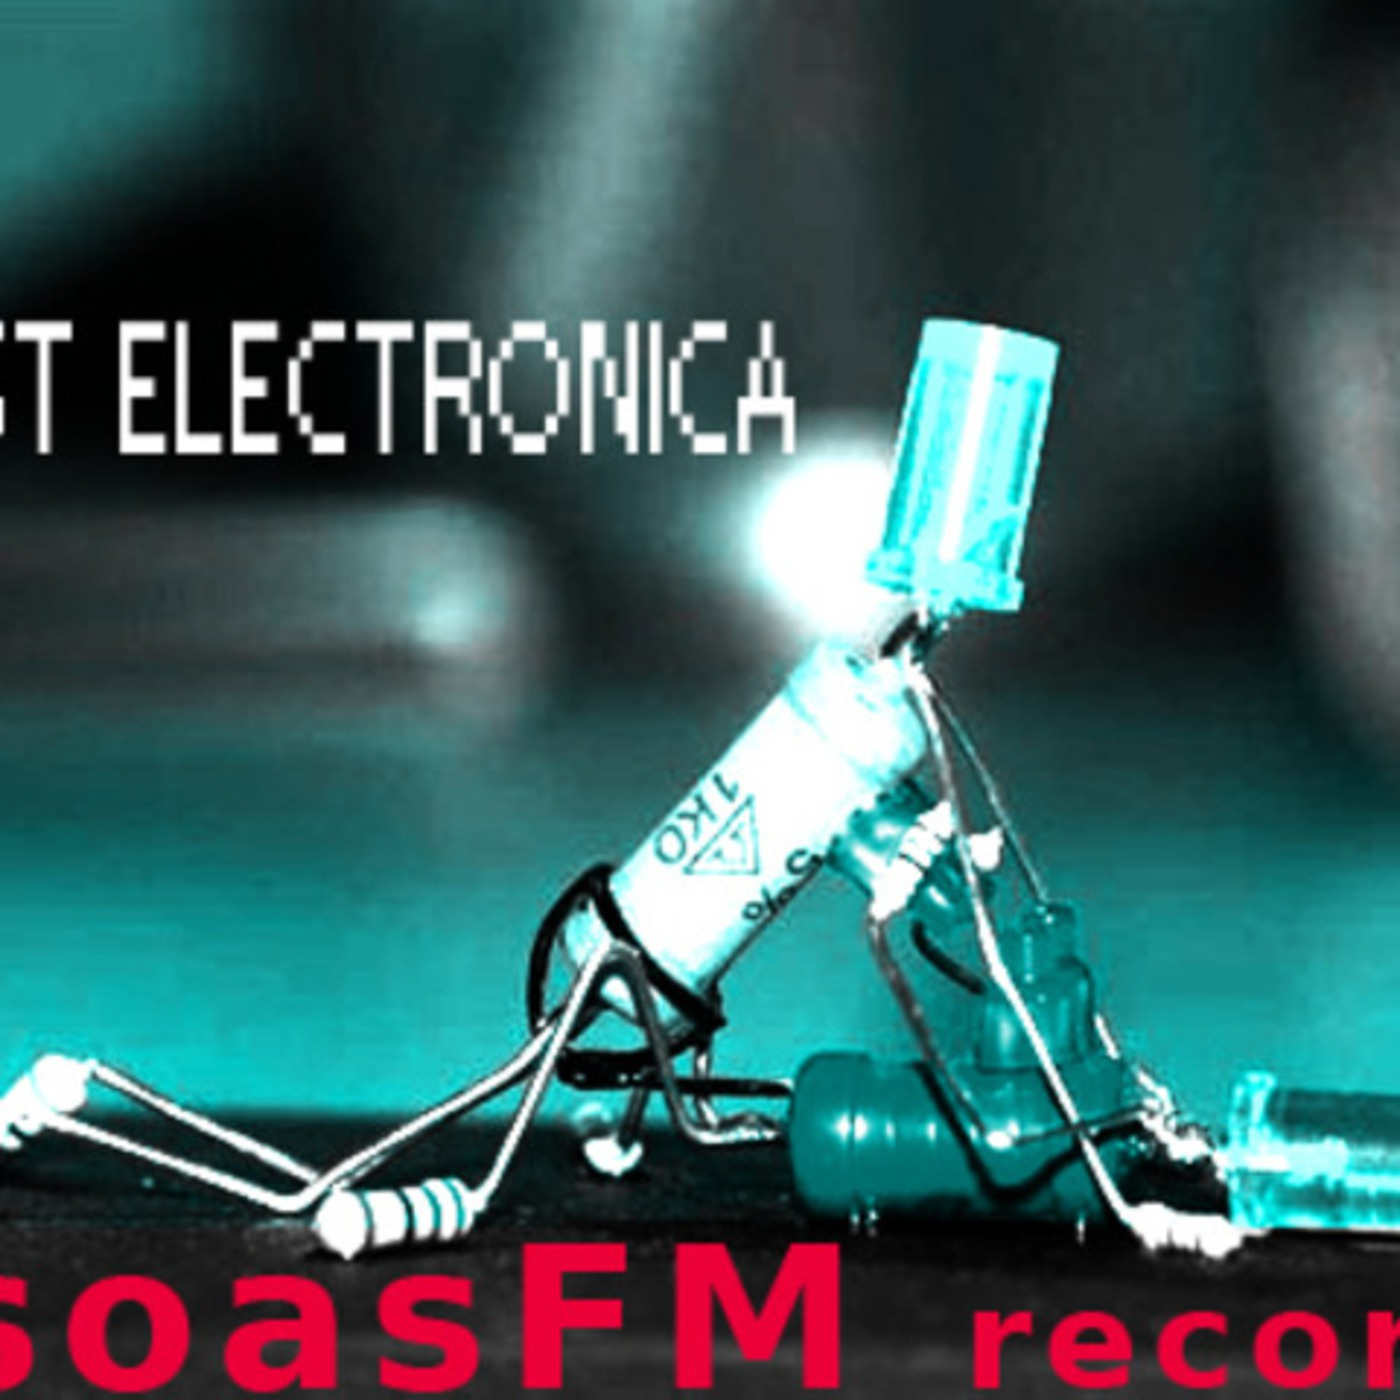 PsoasFM2 (bandwidth exceeded) new episodes here!!!